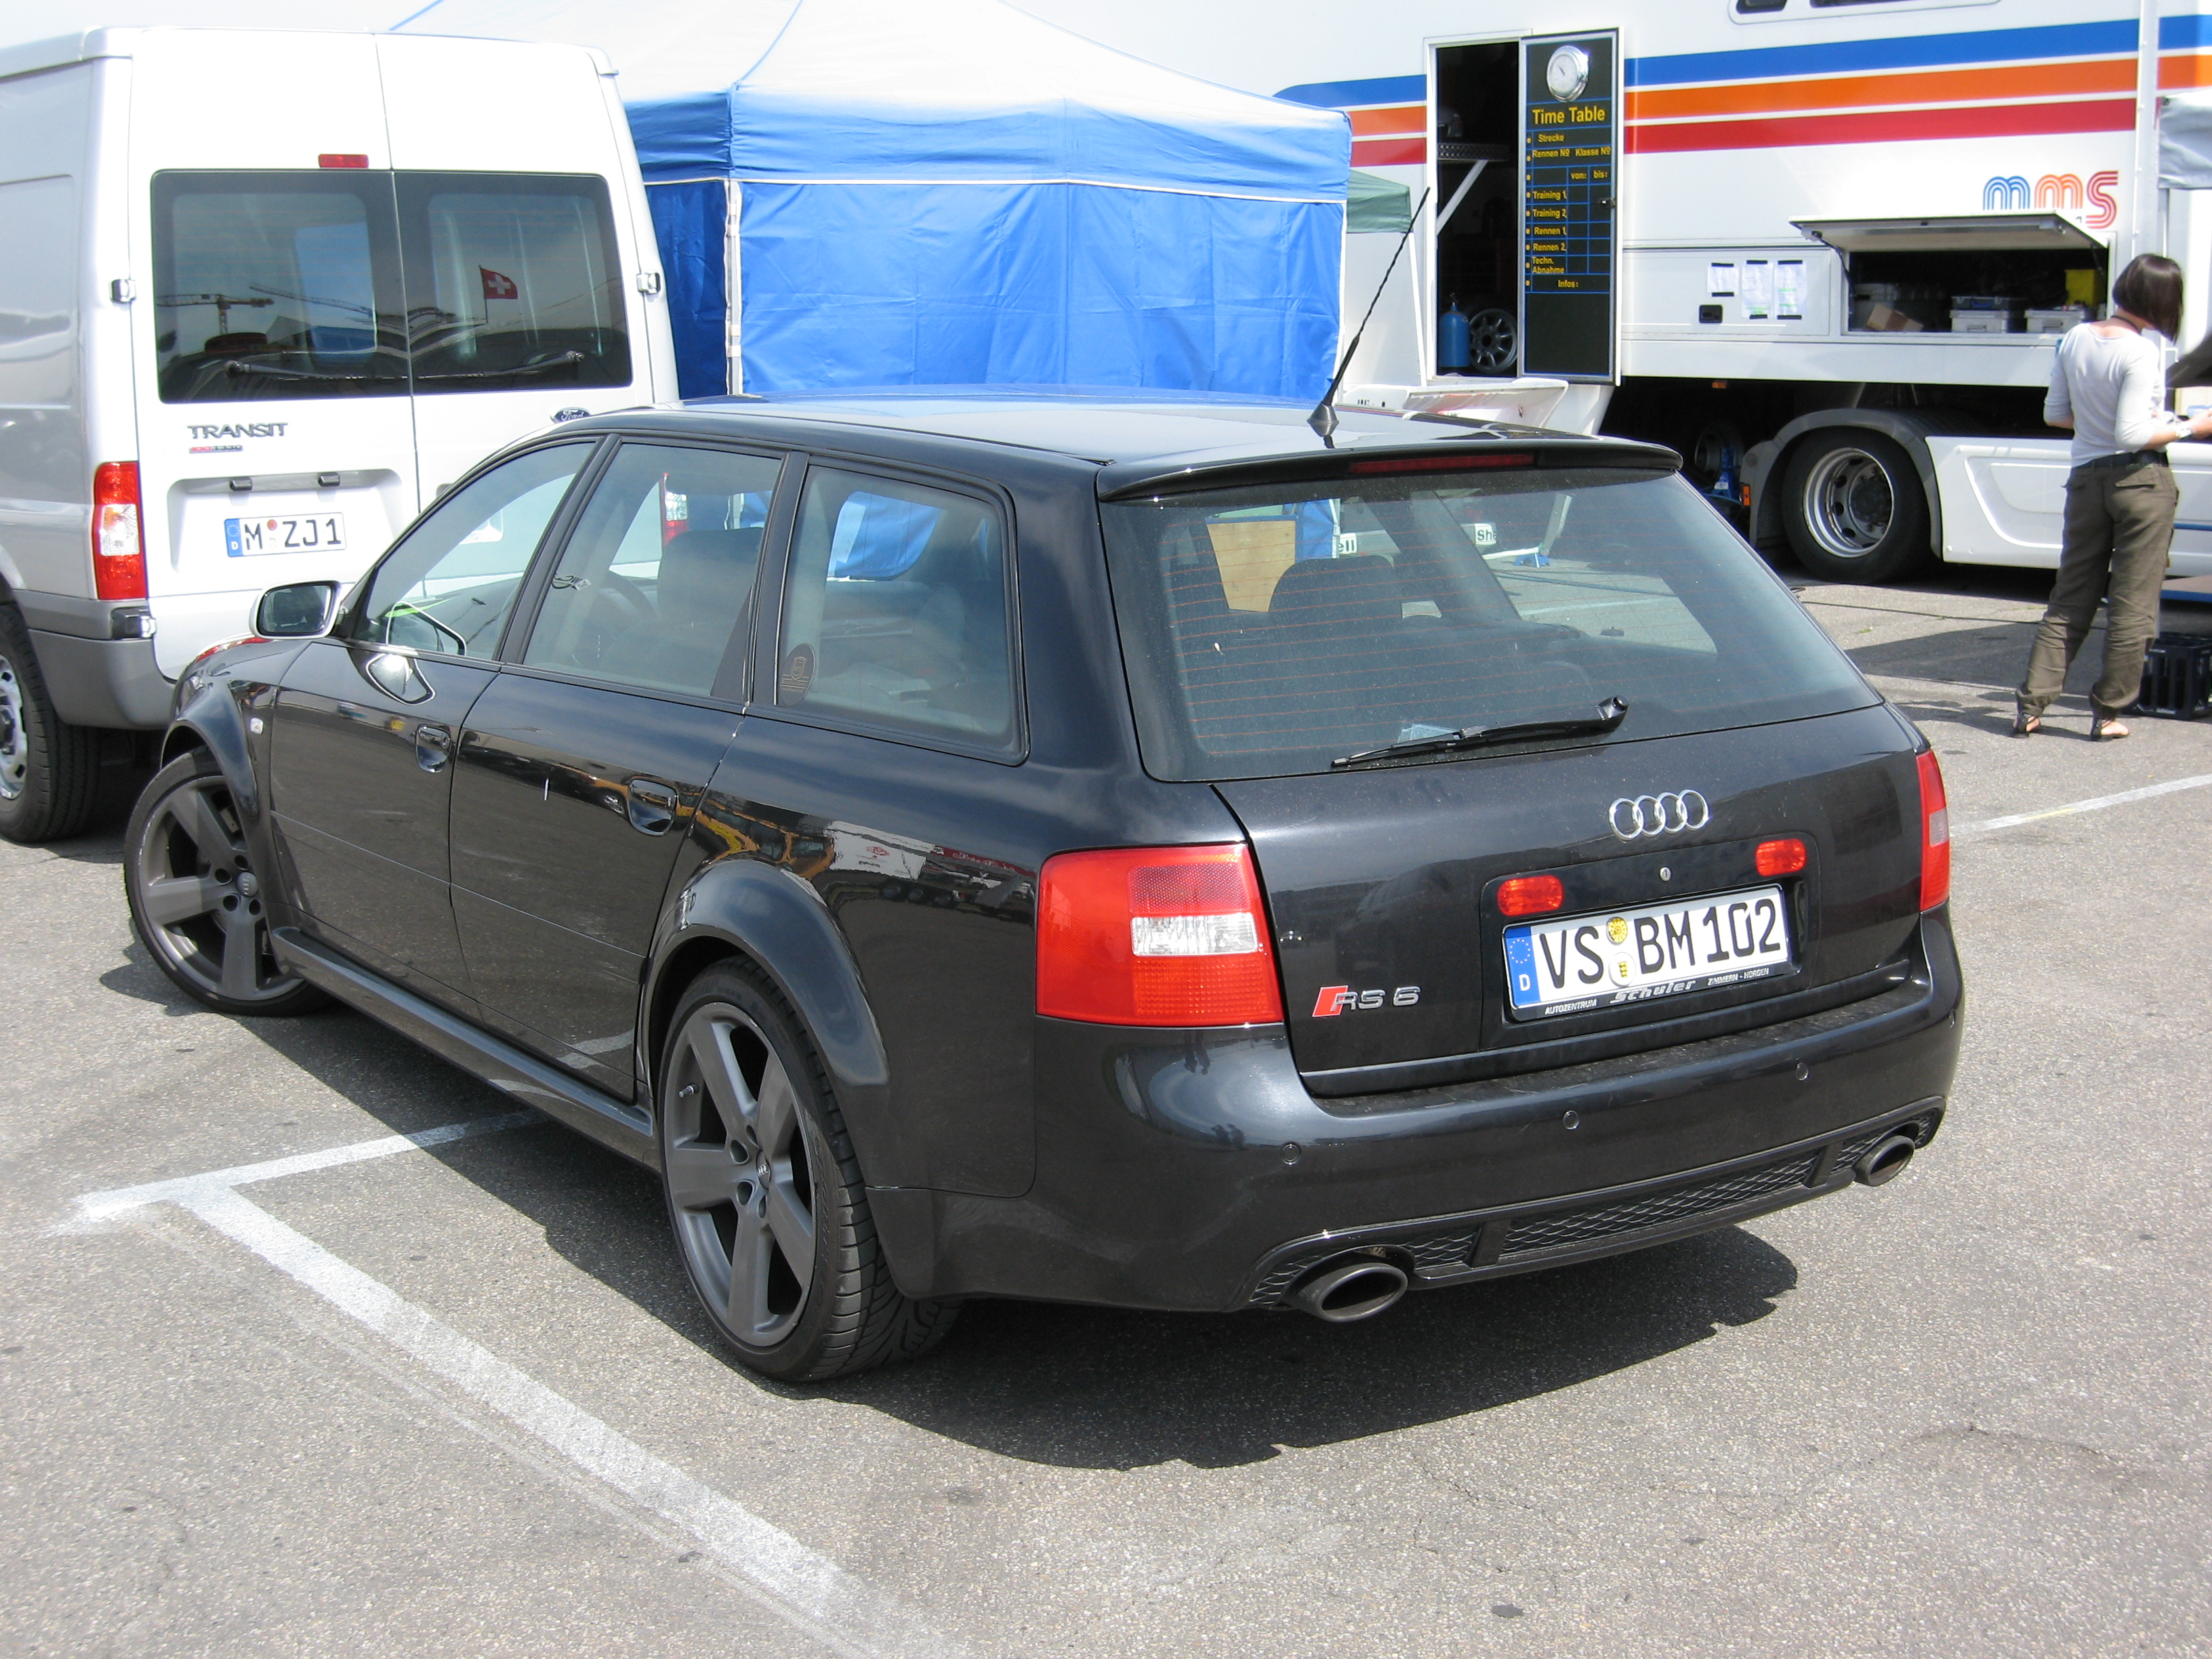 2000 Audi A6 avant (4b,c5) – pictures, information and specs - Auto  Audi A Black on 2000 ford f350 black, 2005 audi a8 black, 2000 chevrolet tahoe black, 2000 ford super duty black, 2000 toyota sienna xle black, 2000 cadillac cts black, 2000 audi a7 black, 2000 acura mdx black, 2000 chevrolet impala black, 2000 bmw 740i black, 2000 mazda miata black, 2000 mercedes s500 black, 2000 cadillac escalade black, 2000 mazda tribute black, 2000 cadillac seville black, 2000 lincoln town car black, 2000 buick regal black, 2000 porsche boxster black, 2000 saab 9-5 black, 2000 toyota rav 4 black,